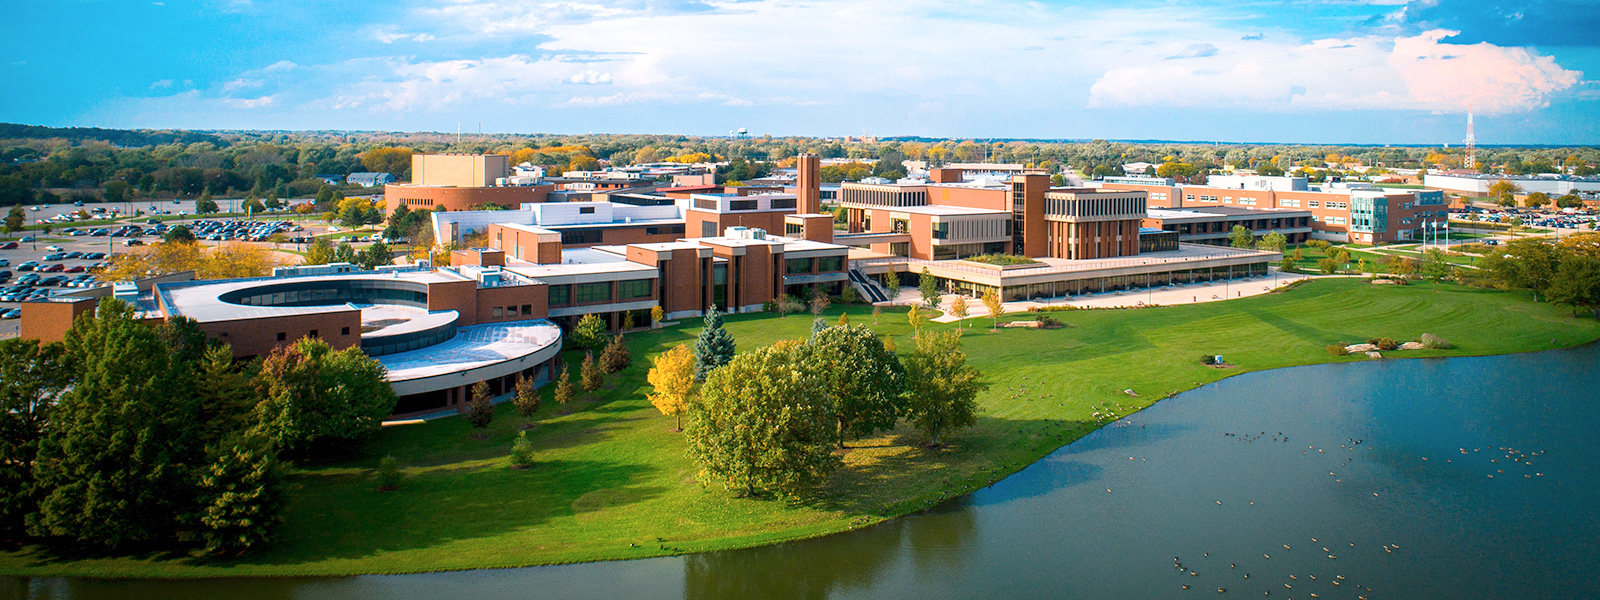 Arial photo of the ECC campus with a view of Lake Spartan